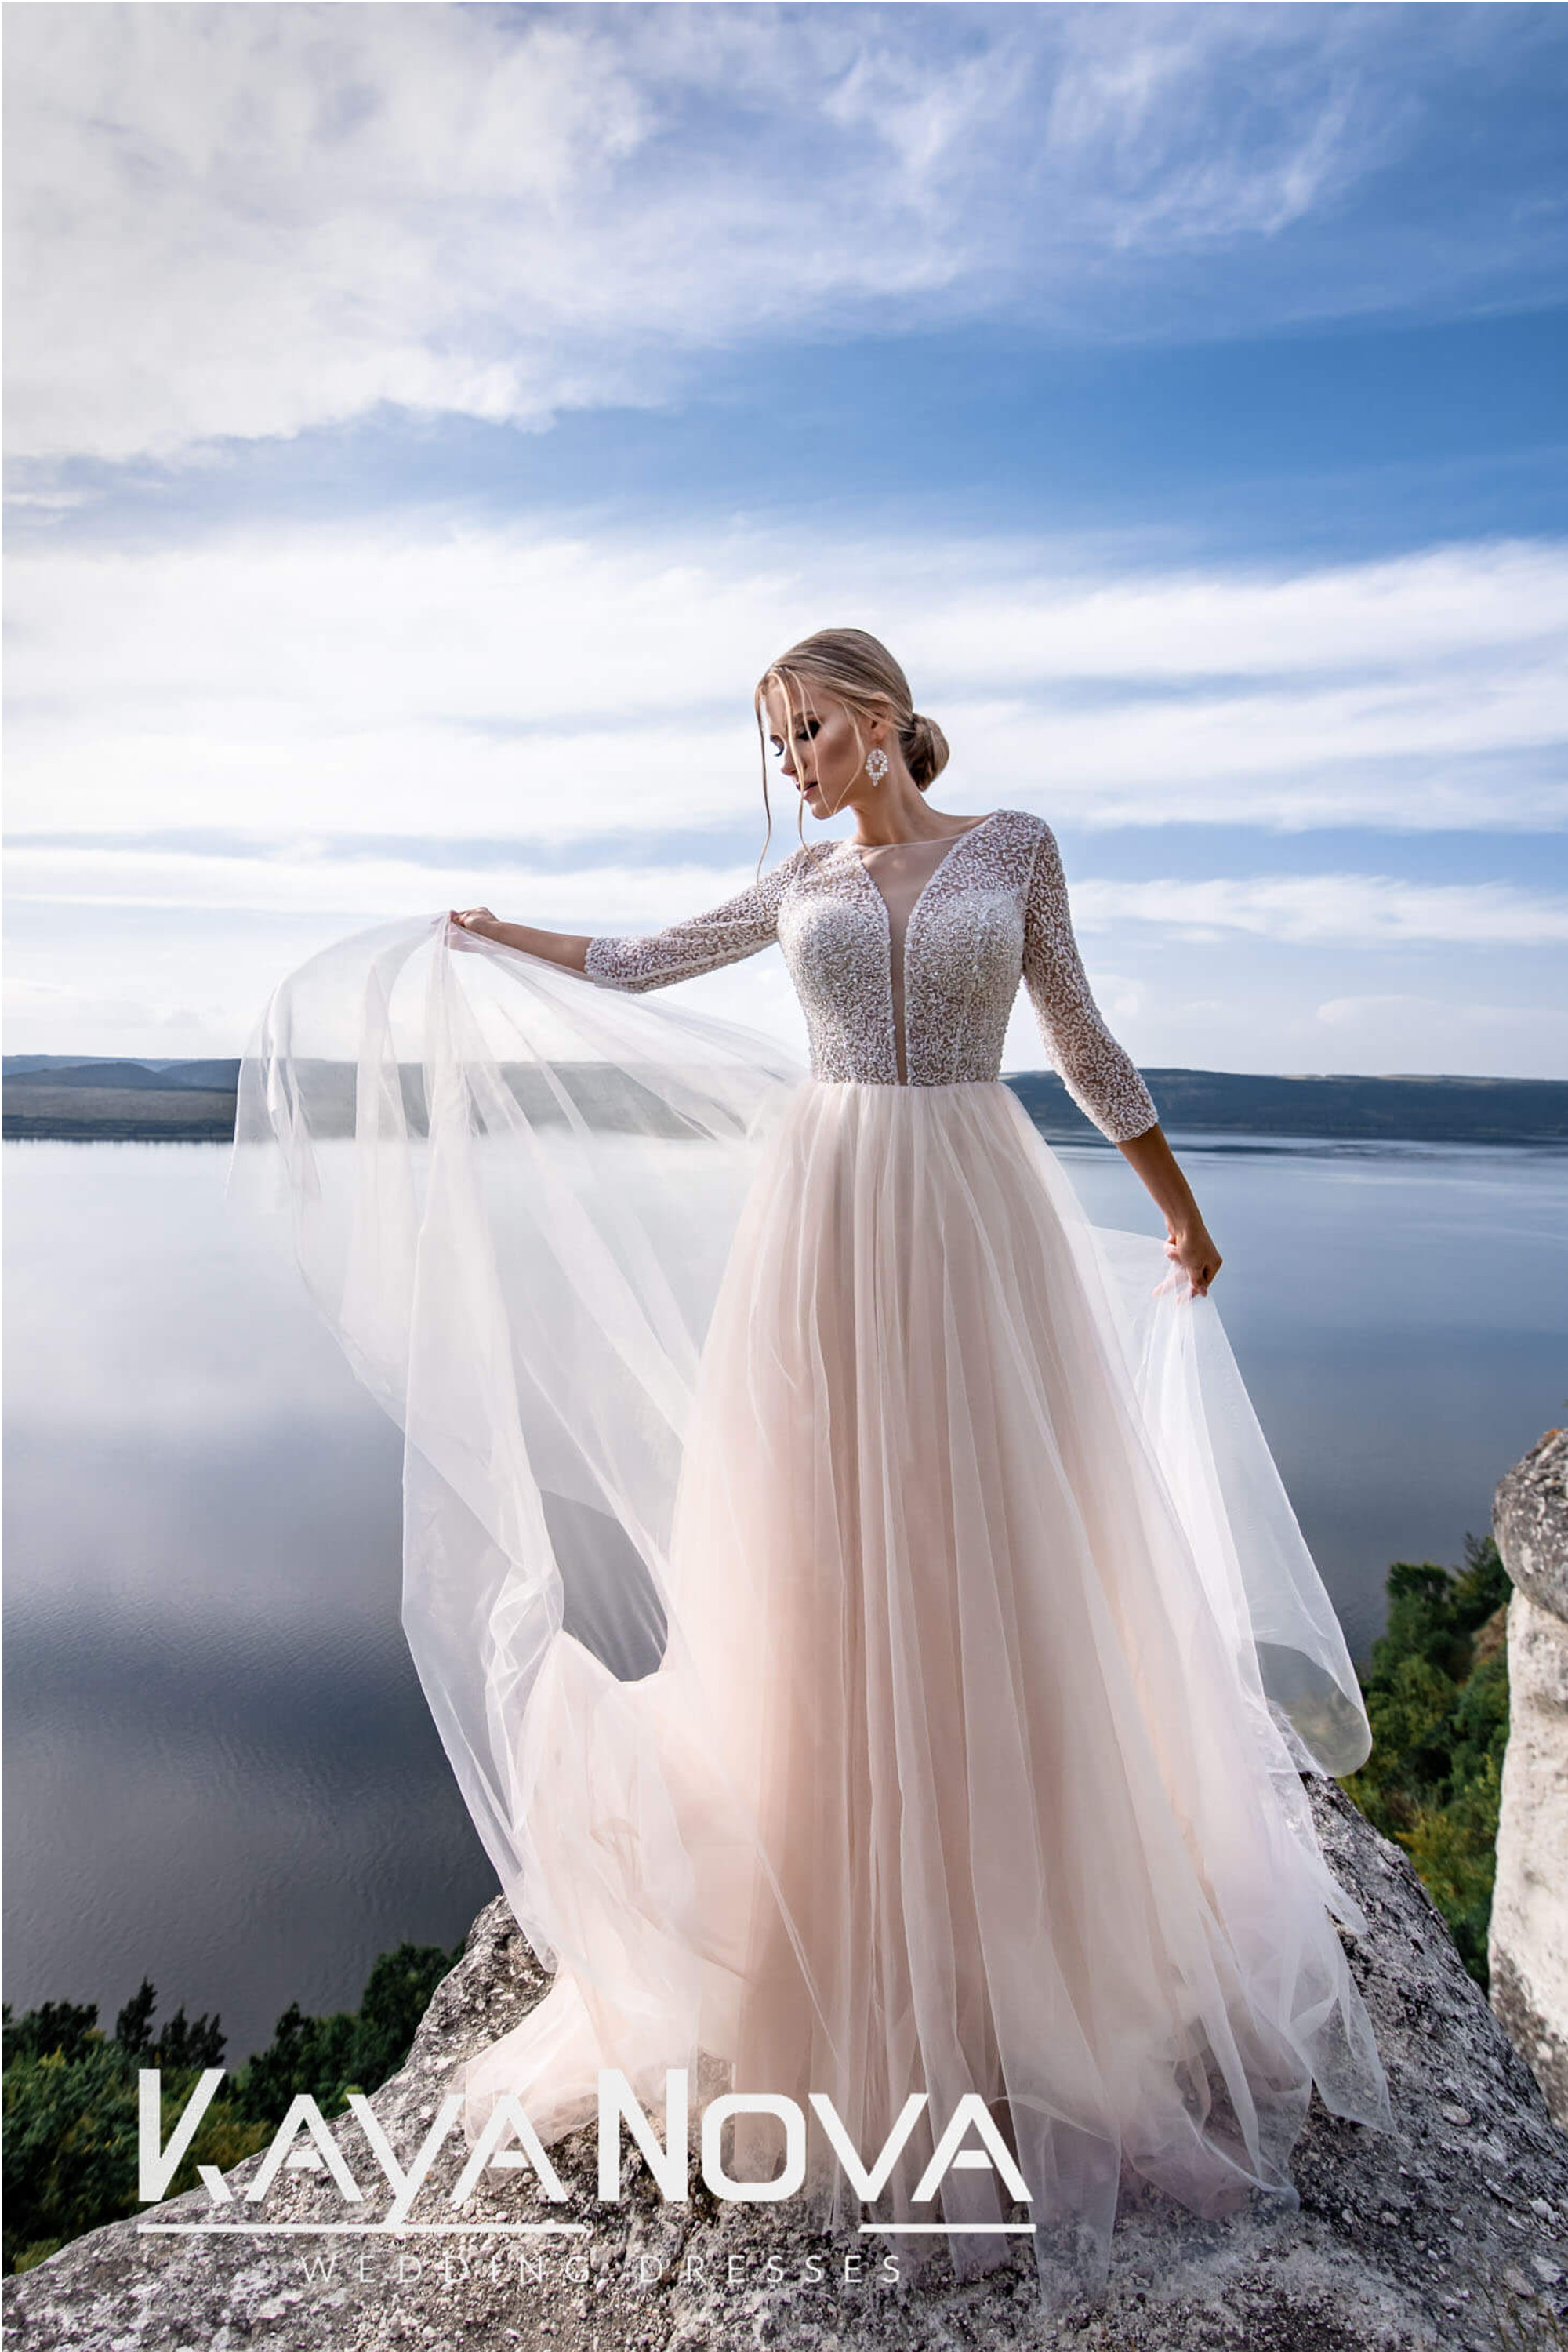 https://kayawedding.com/images/stories/virtuemart/product/daria205$15.jpg